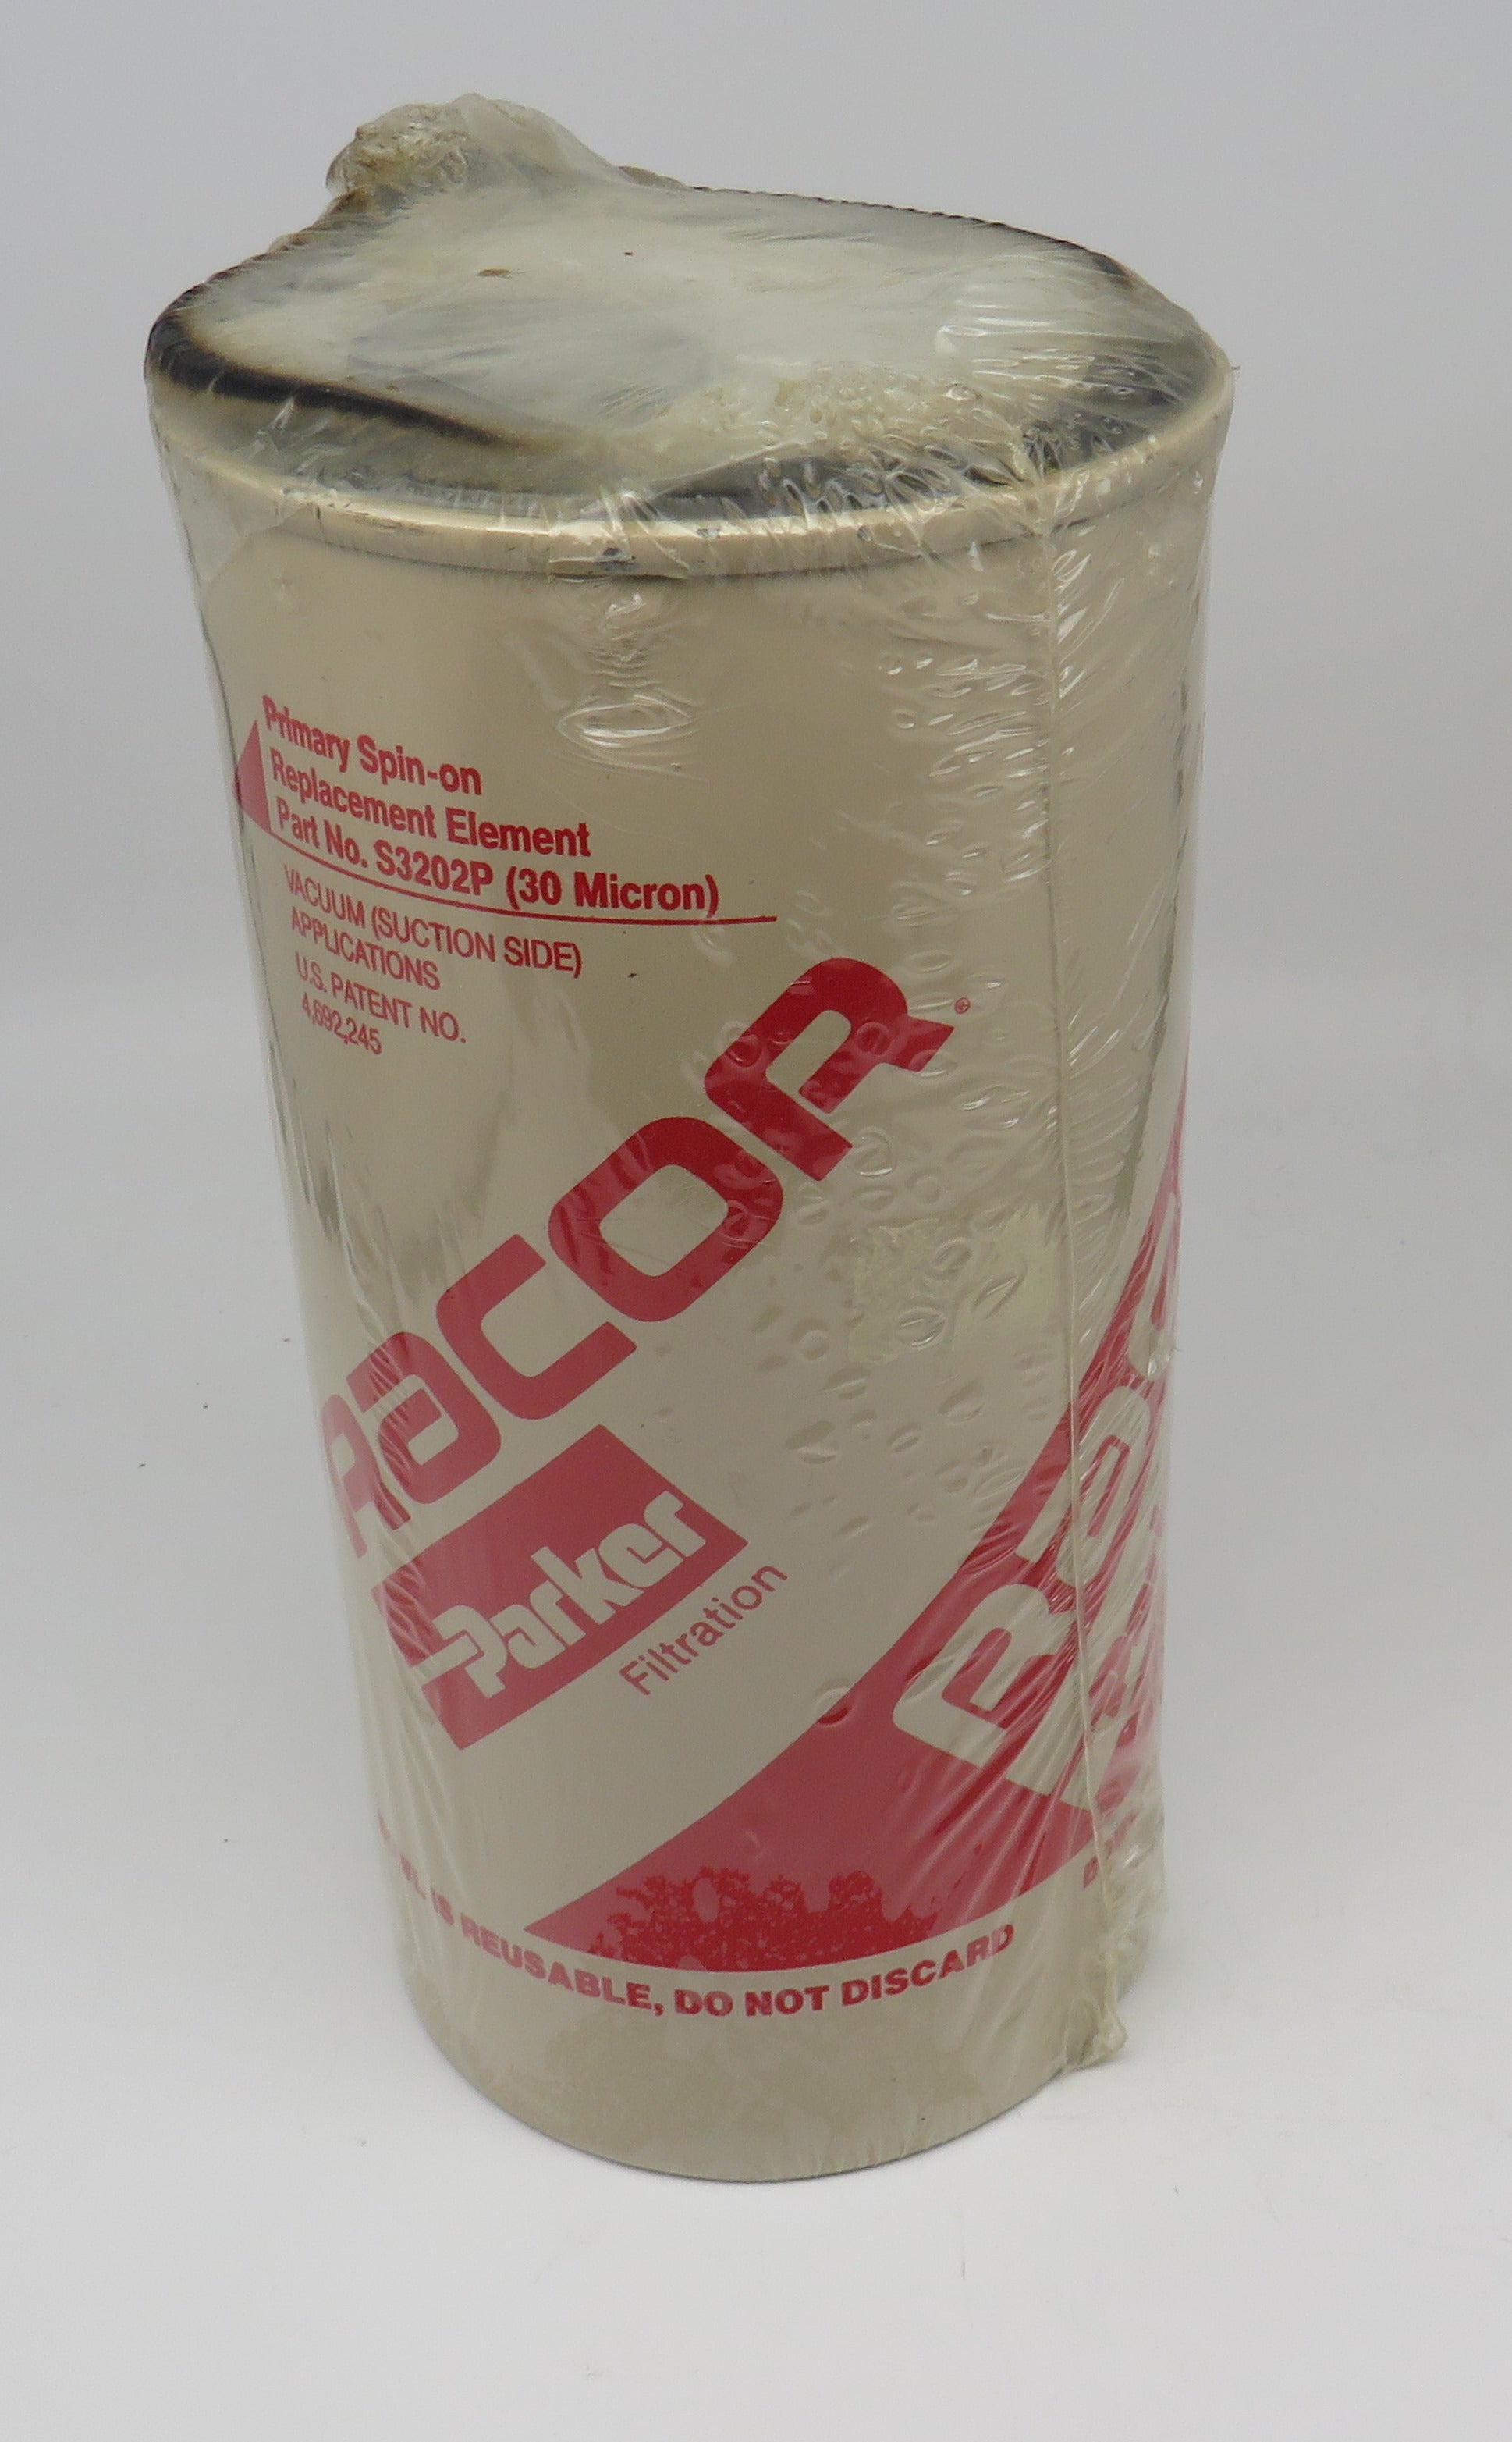 S3202P Racor Primary Spin on Element Fuel Filter 30 Micron